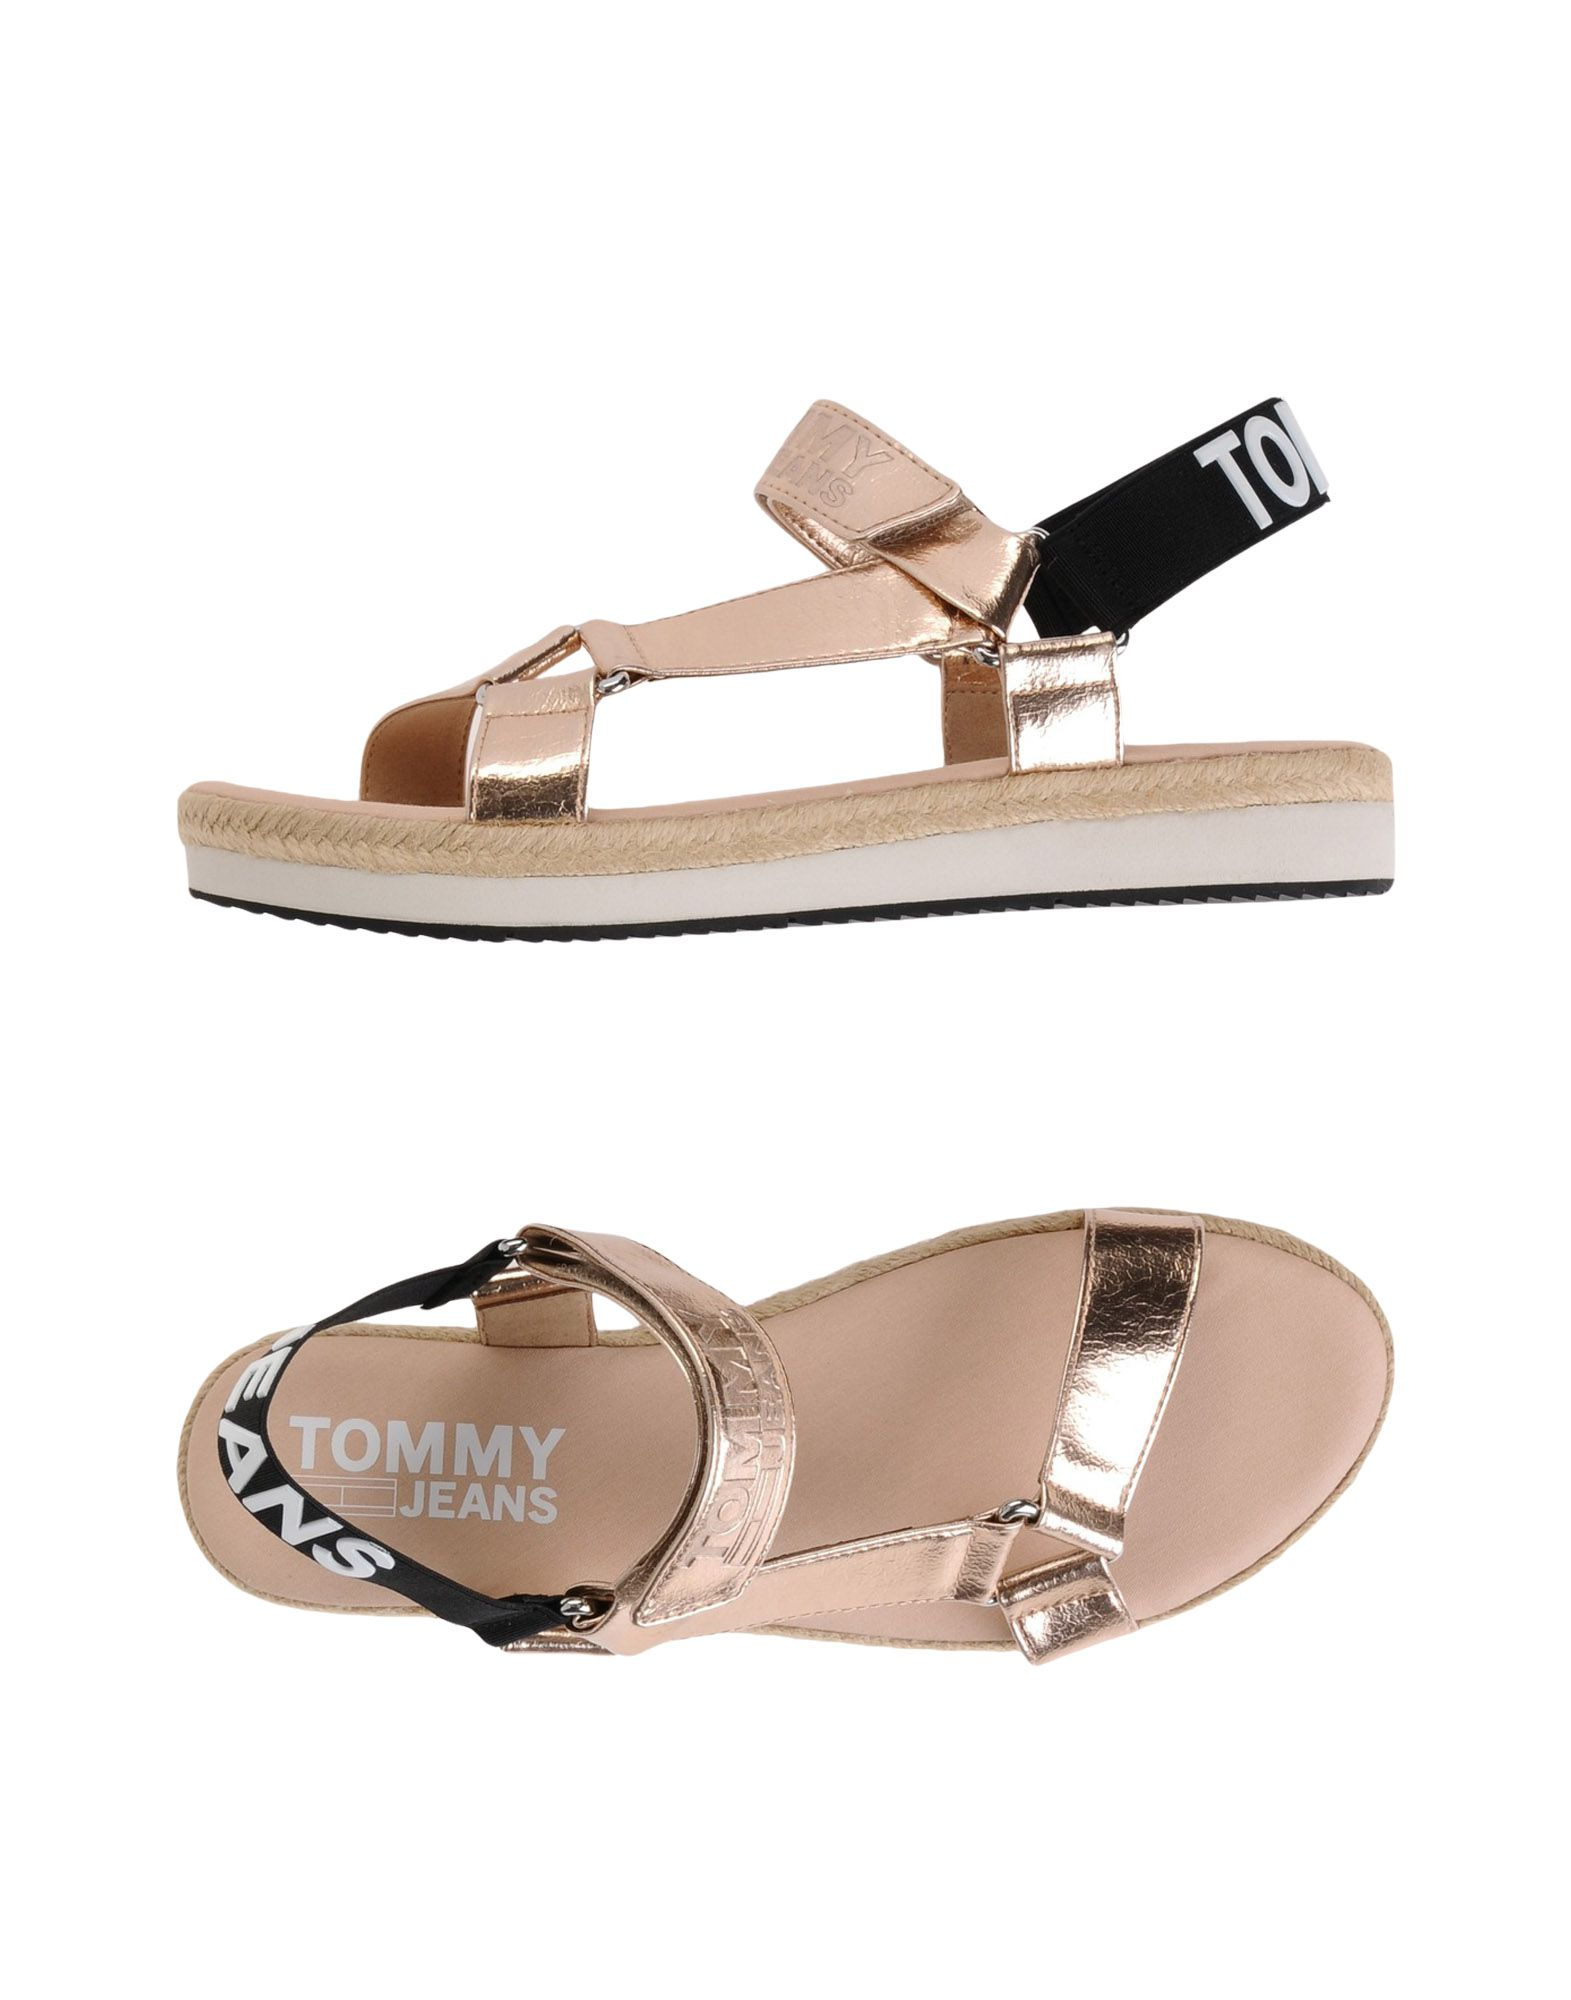 Tommy Jeans Jeans Sandals - Women Tommy Jeans Jeans Sandals online on  Australia - 11470970VX f5398e